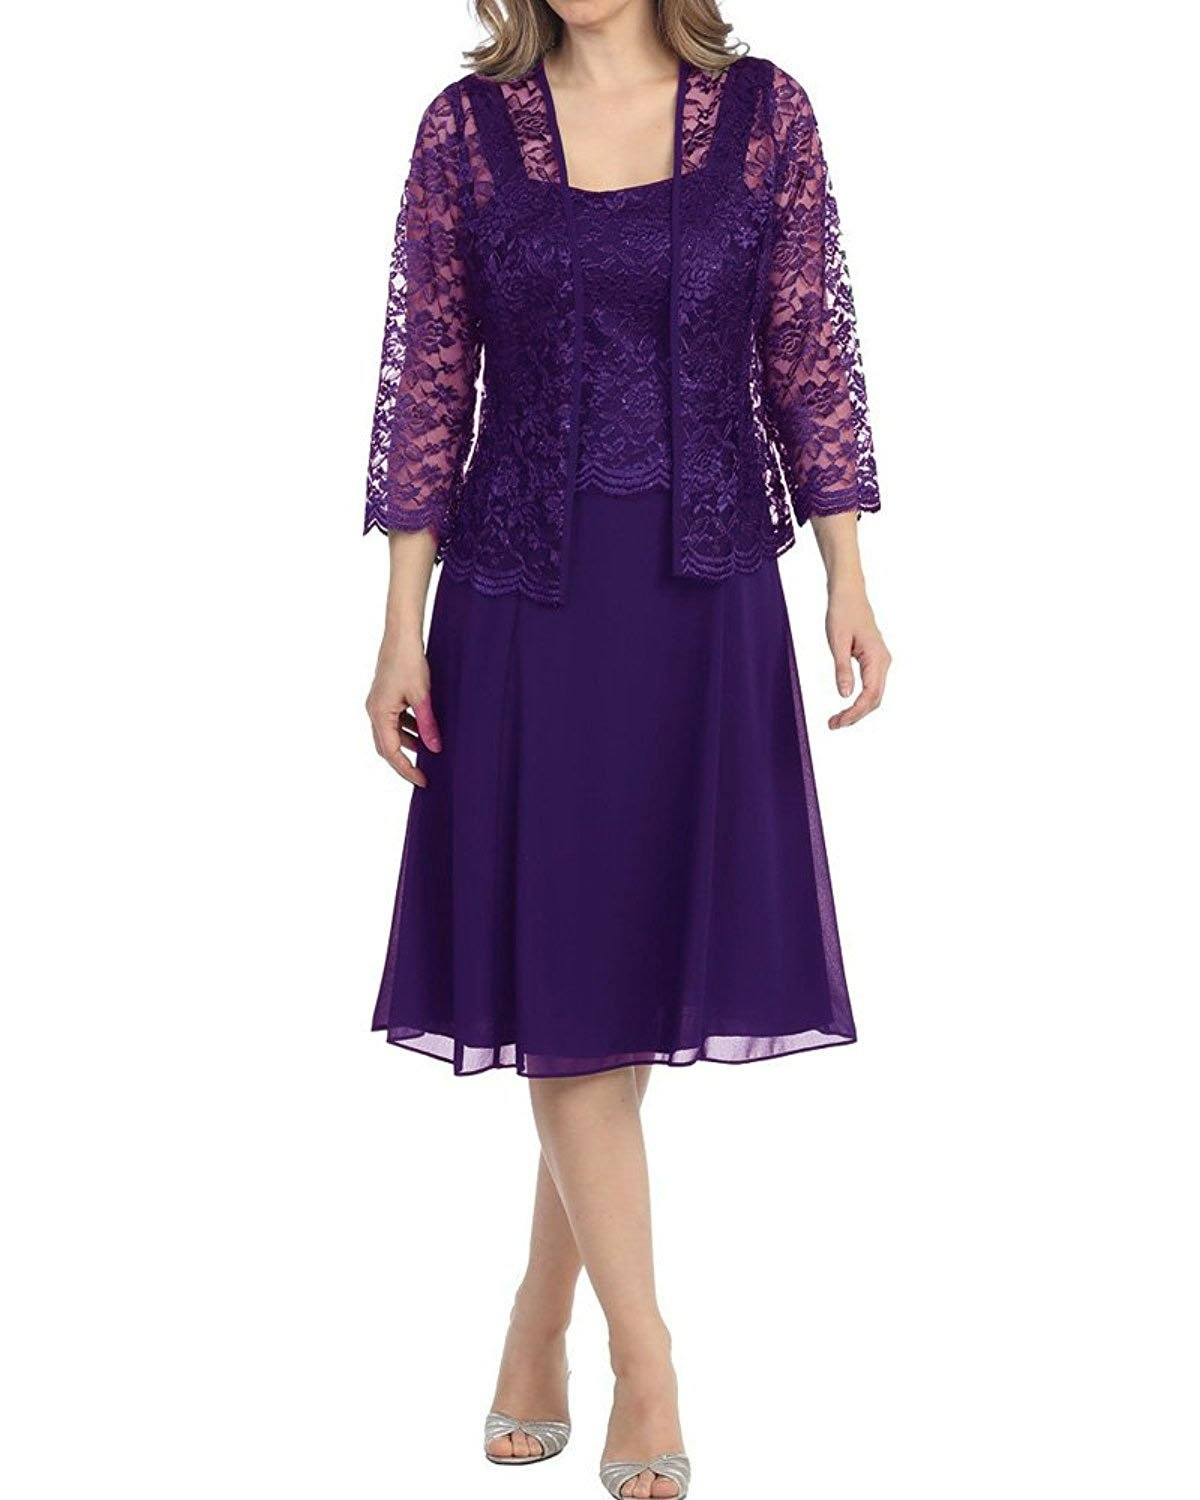 Purple Womens Short Mother of the Bride Plus Size Formal Lace Dress with Jacket Dark Purple US28